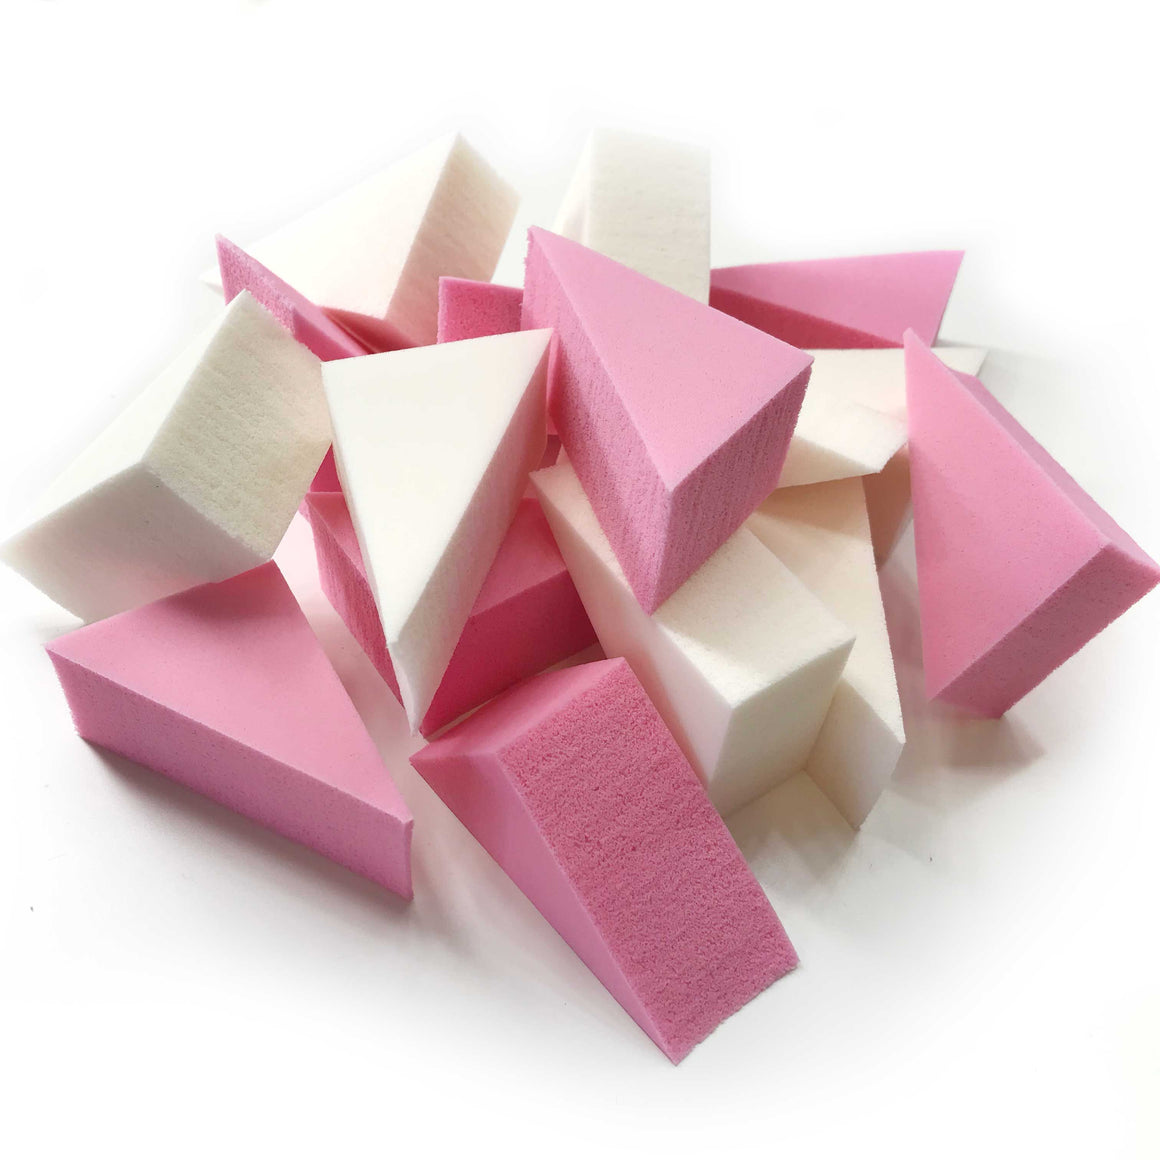 Non-Latex Sponge Wedges 40pcs